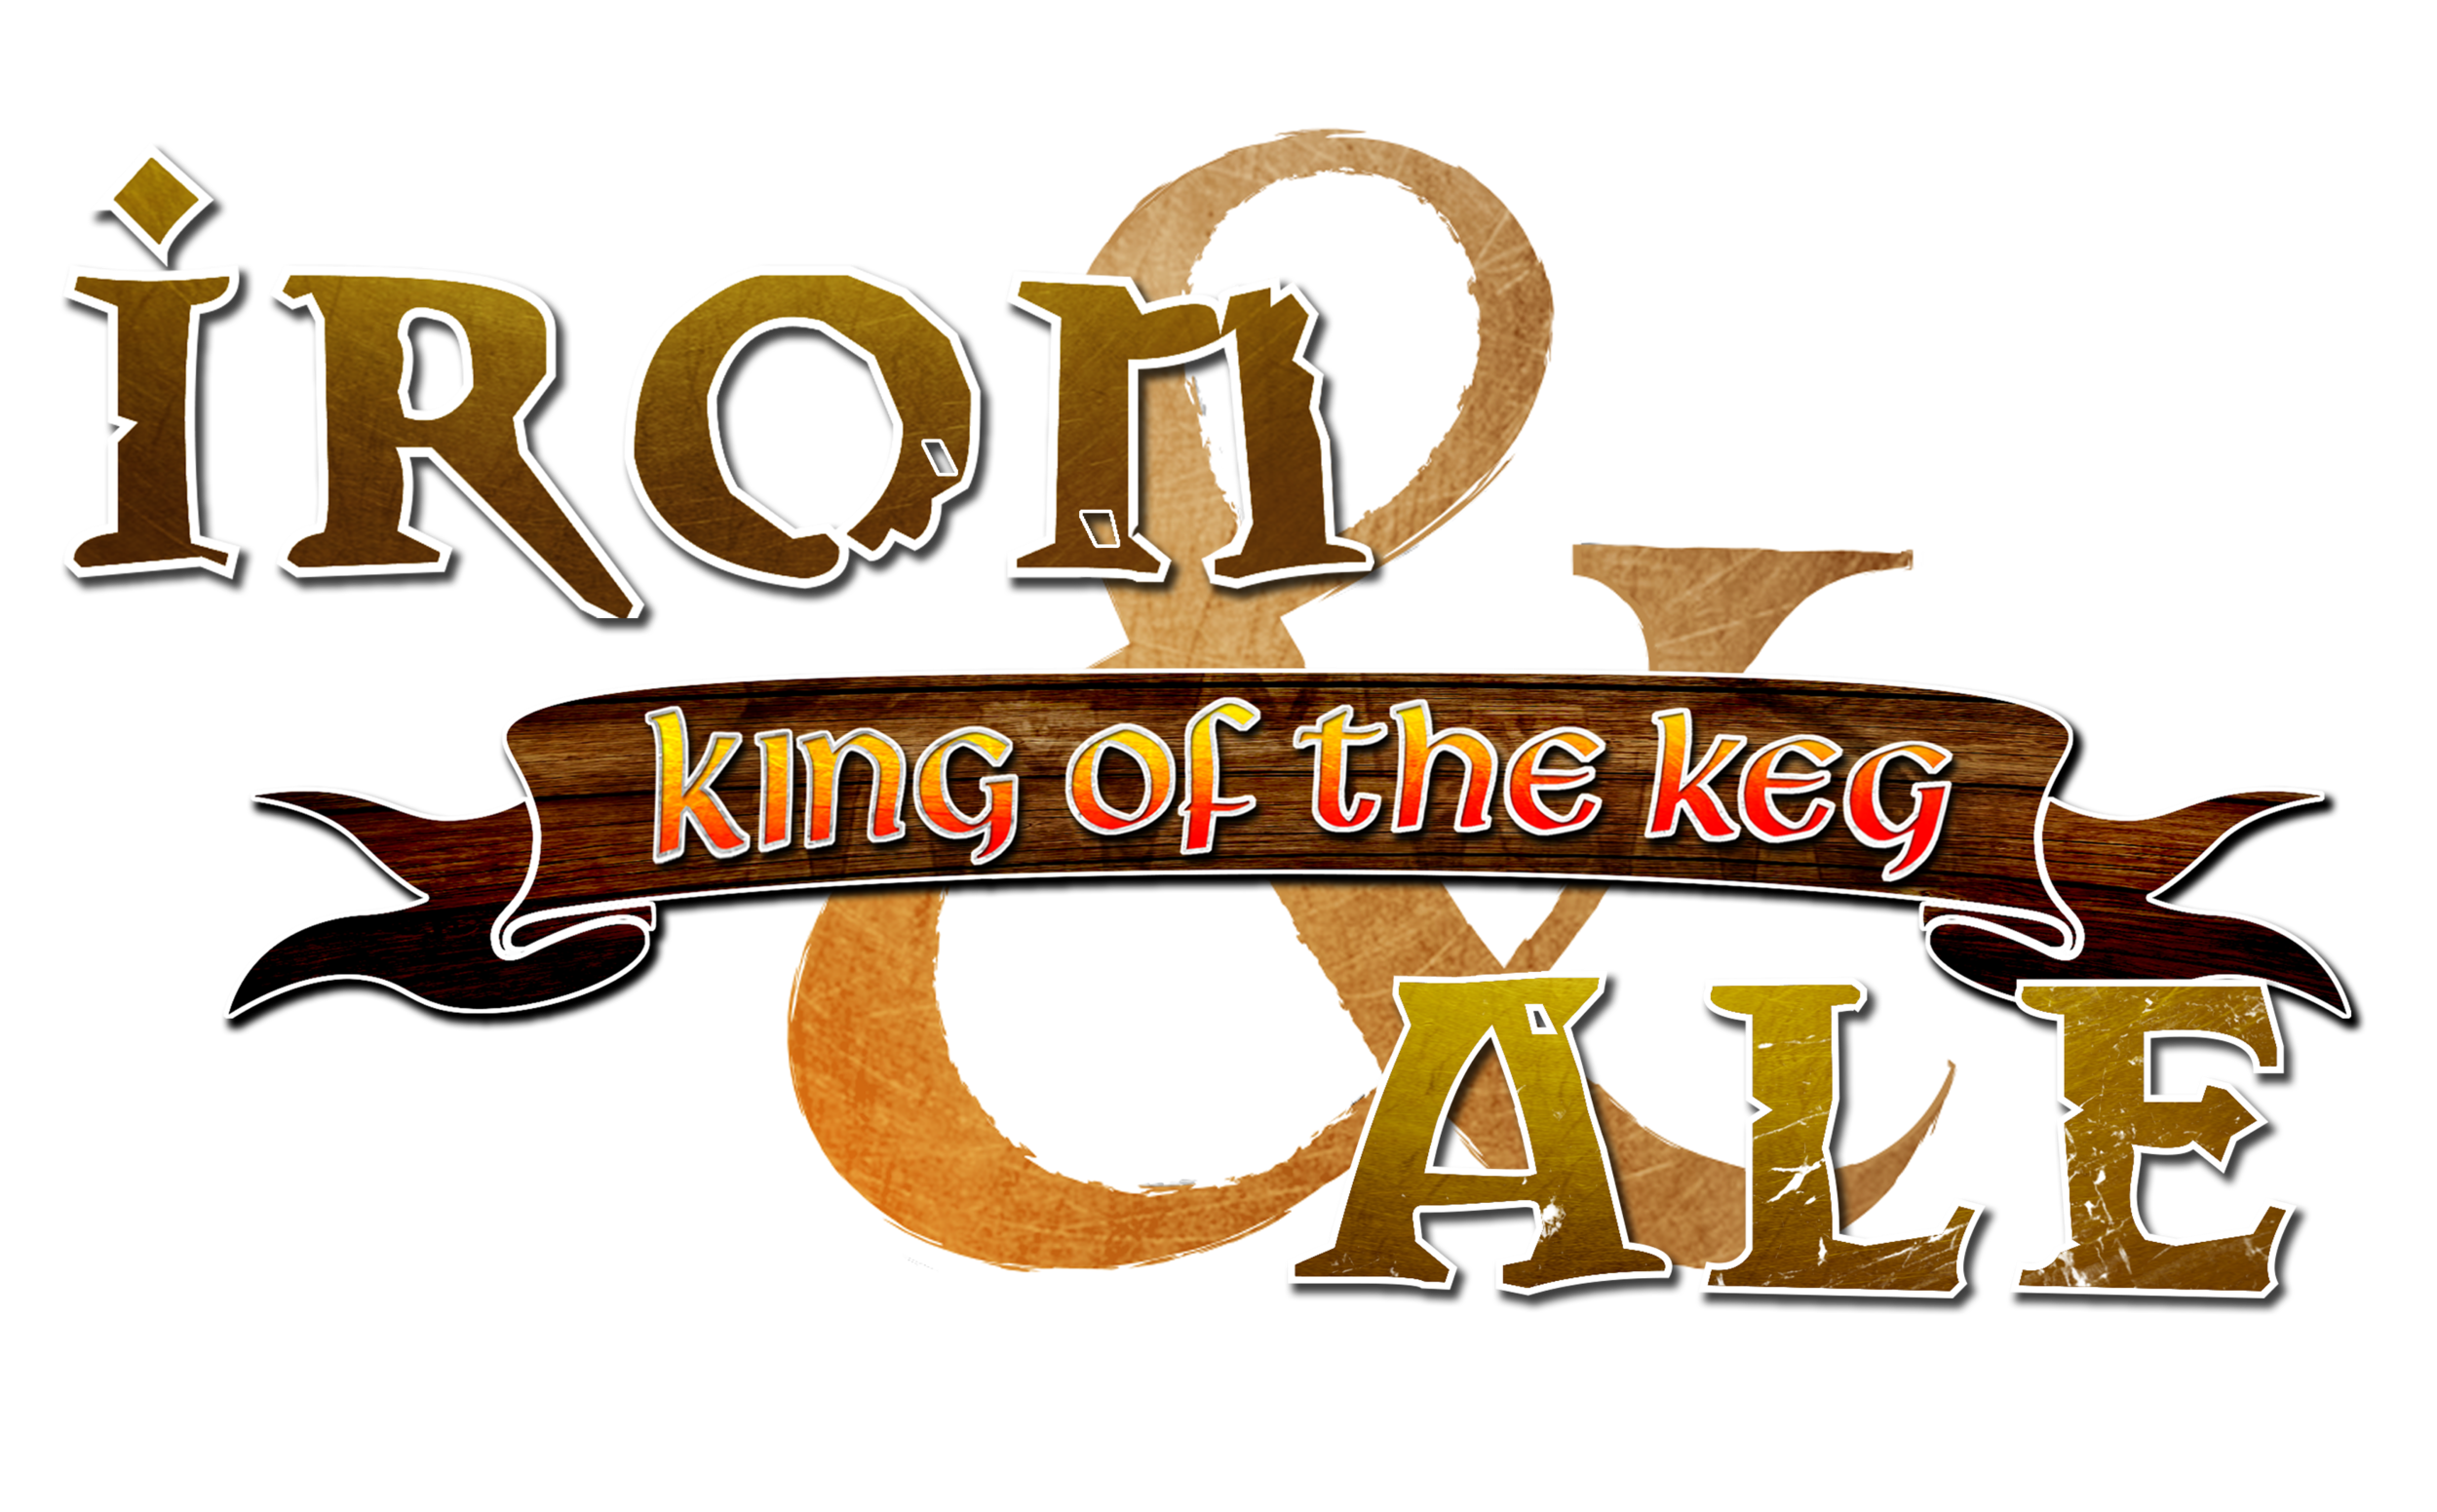 Iron And Ale King of the Keg Full Logo2.png